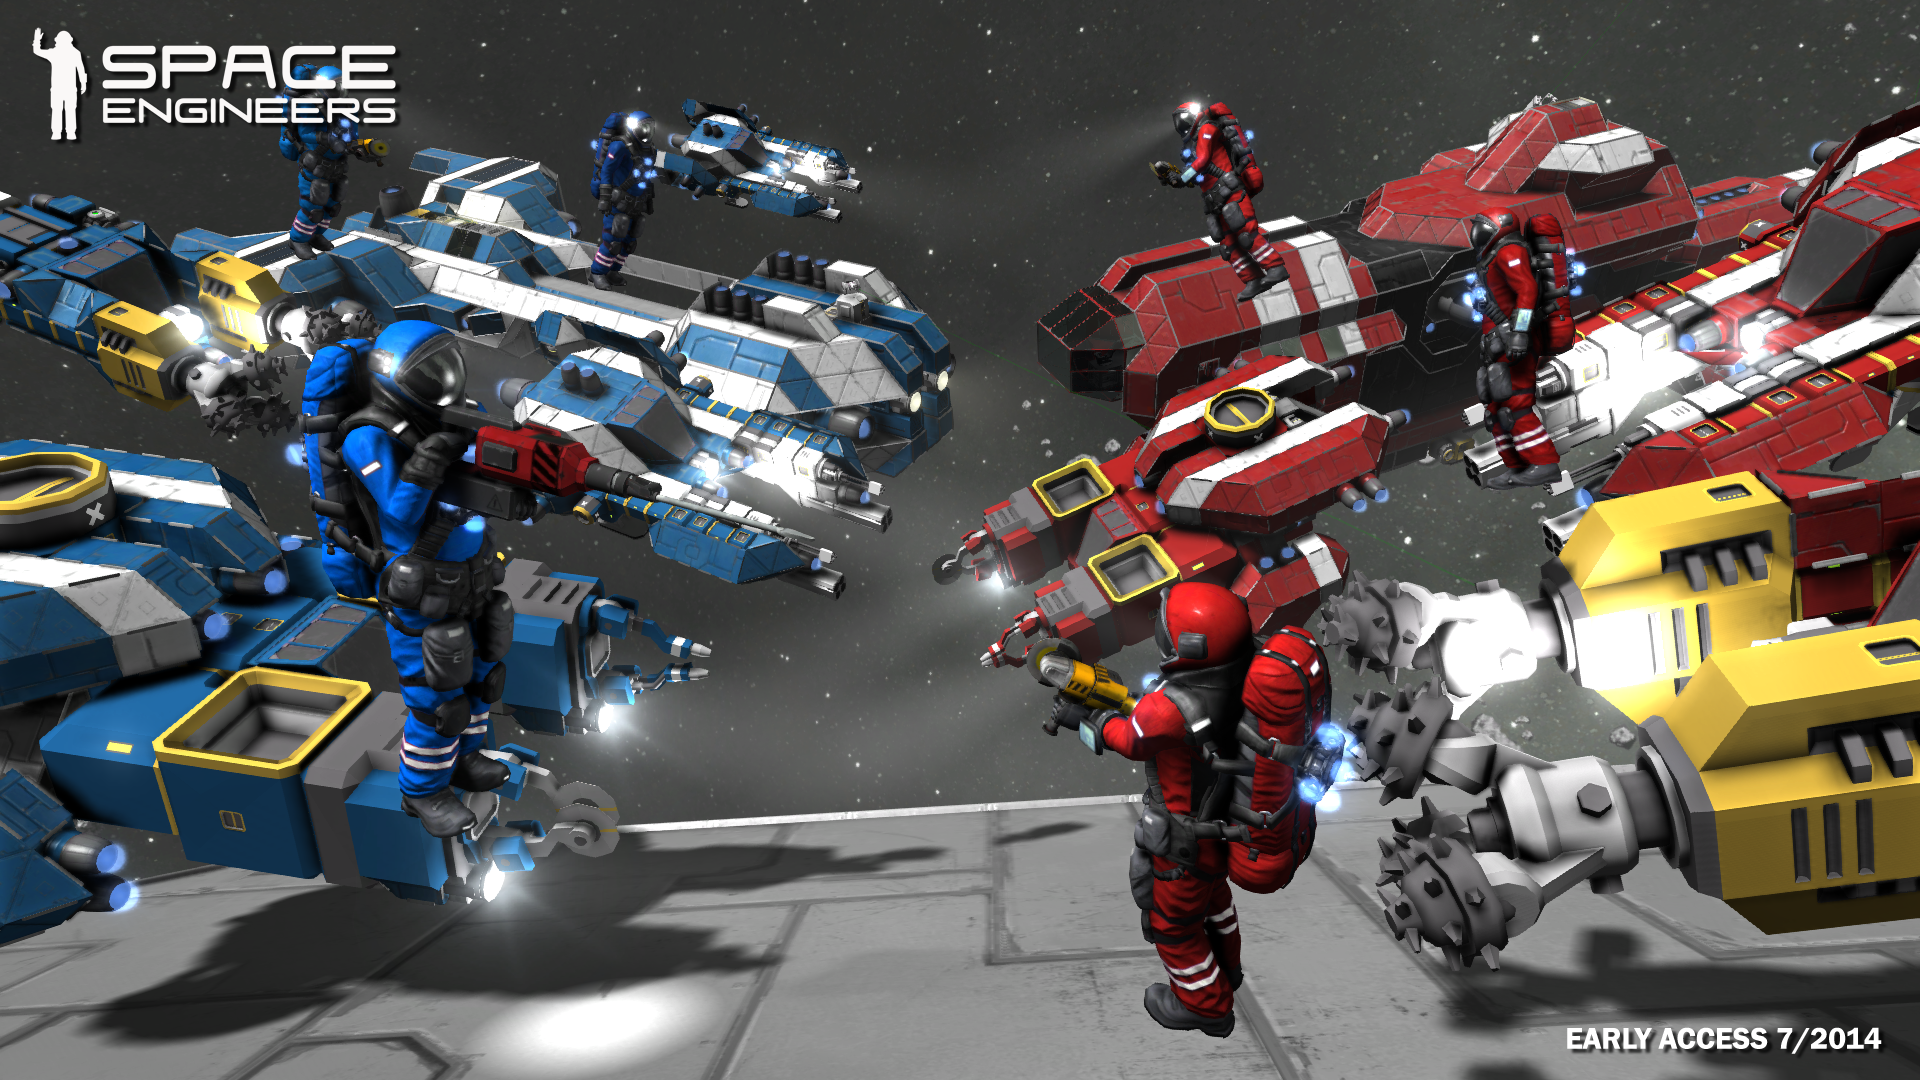 Custom Home Design Software Series Of Updates For Space Engineers Set In Orbit Mxdwn